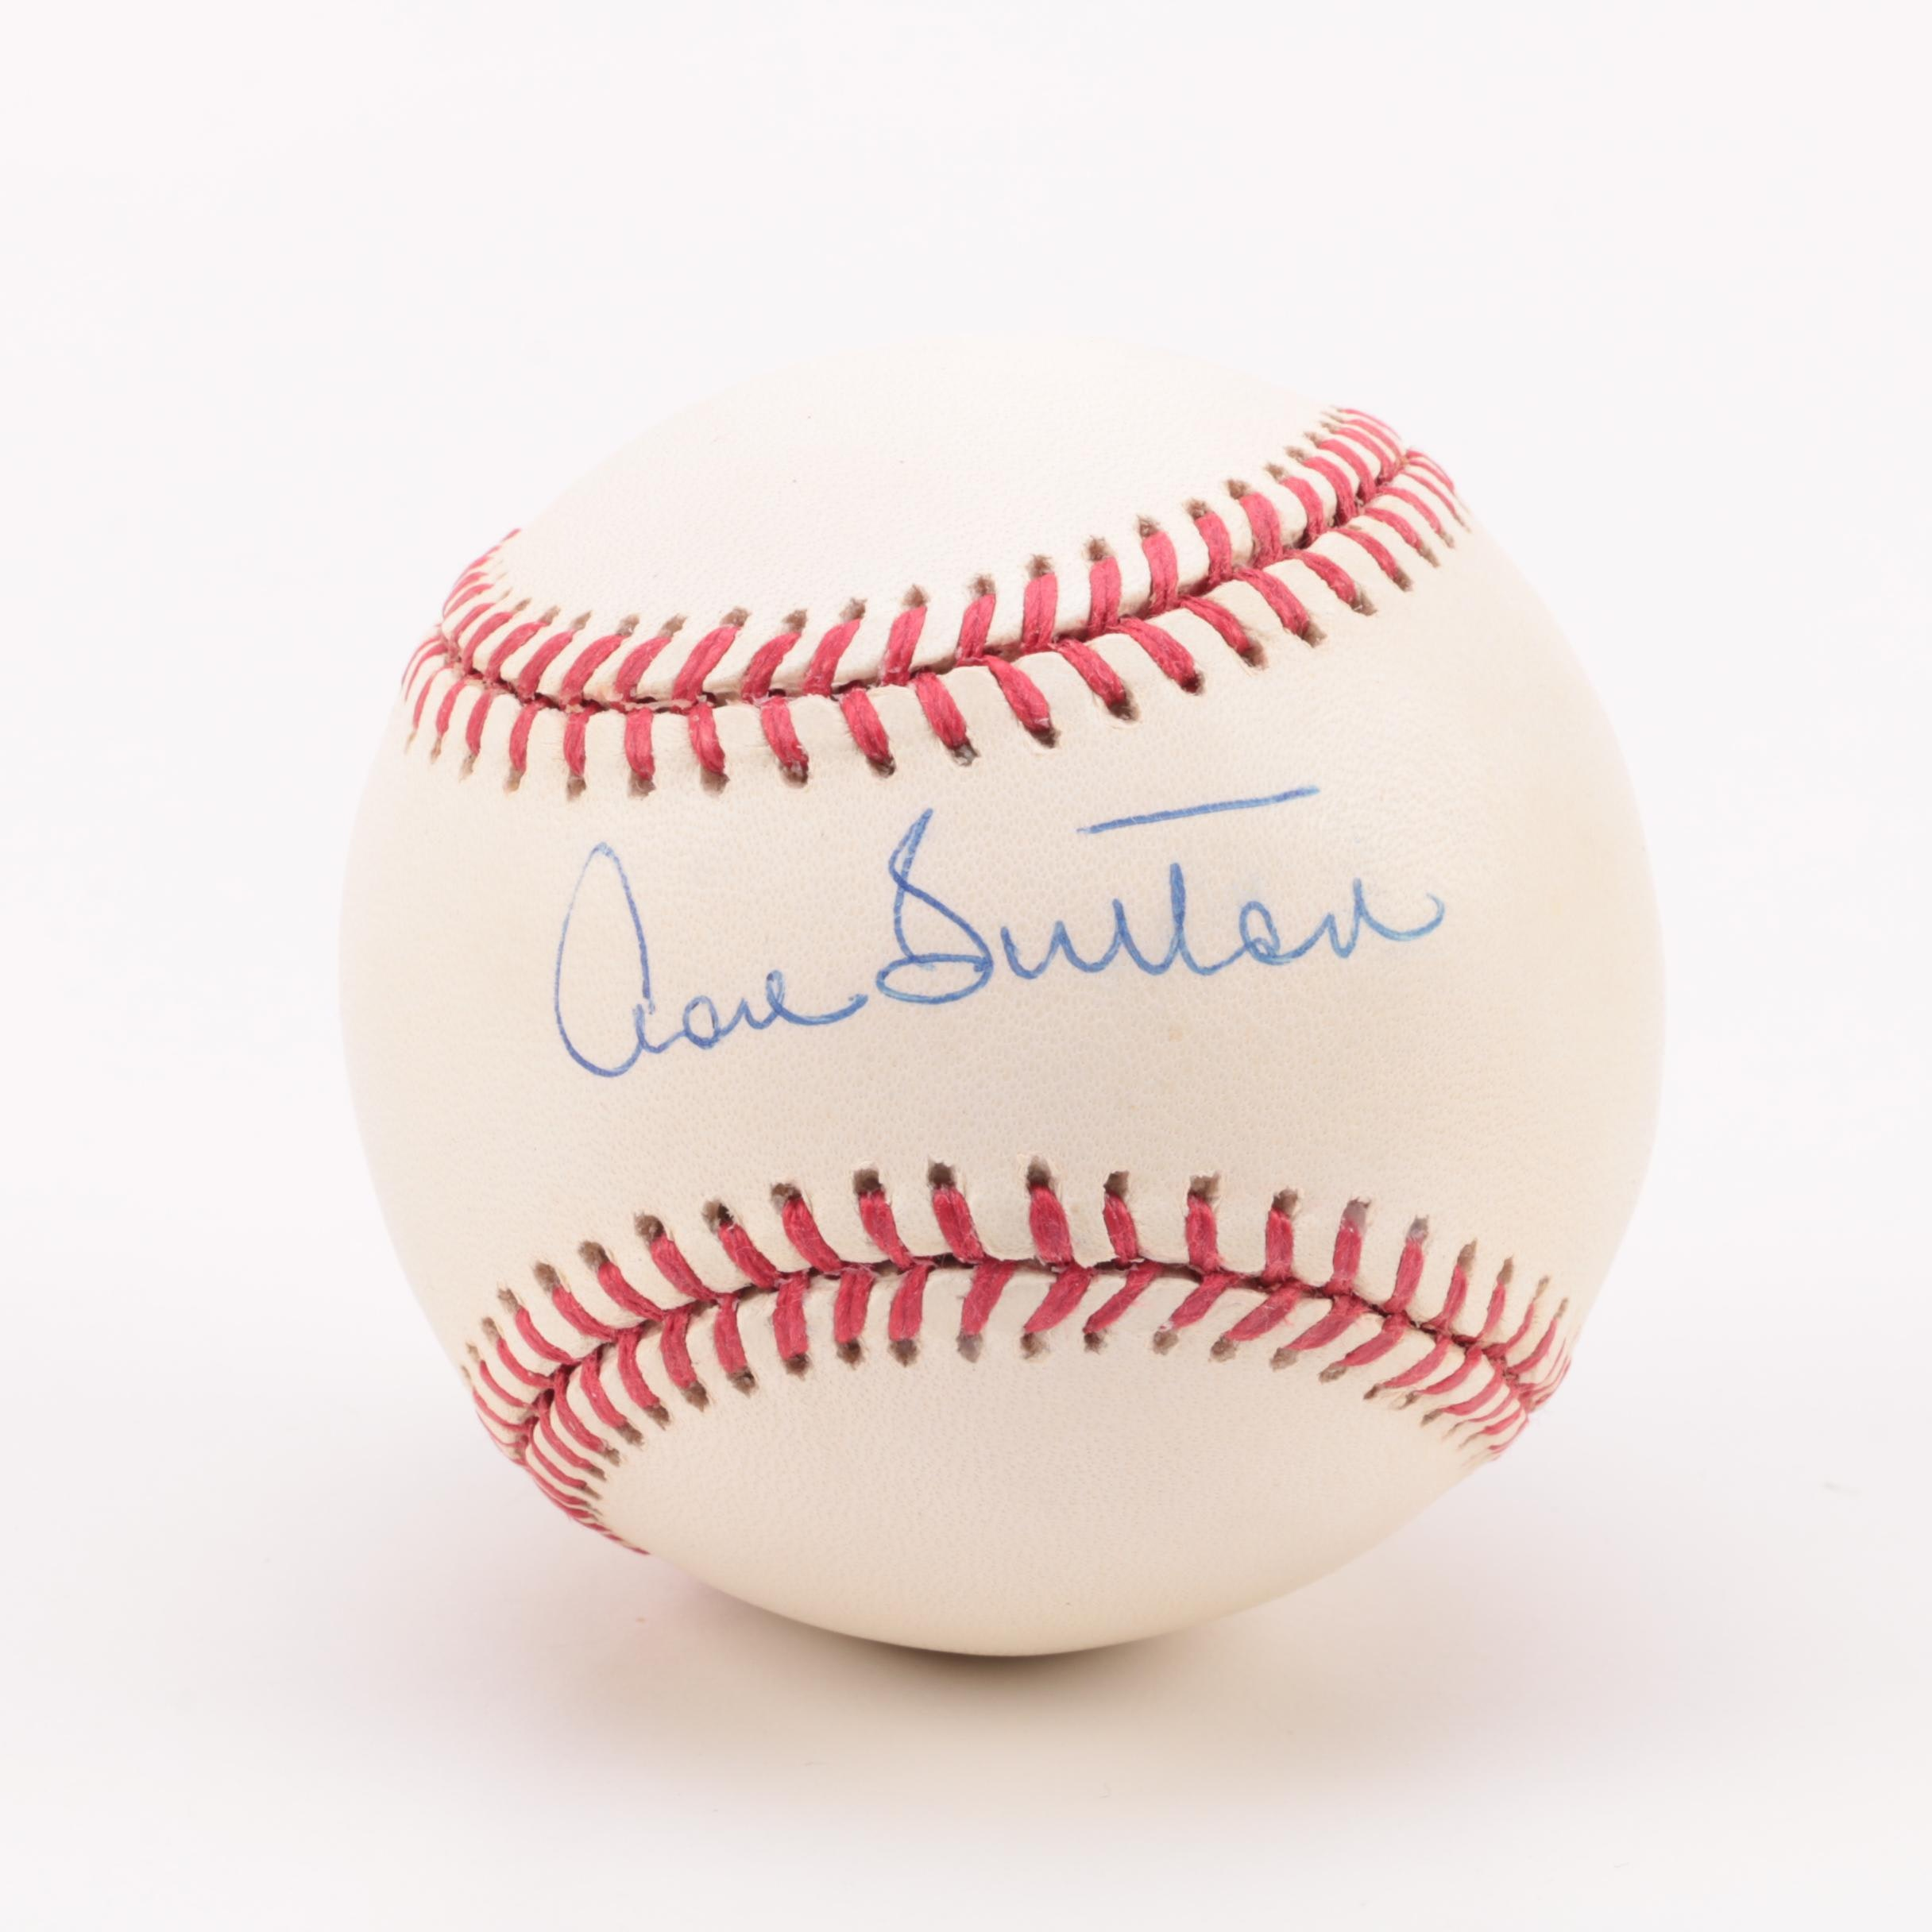 Autographed Don Sutton Baseball